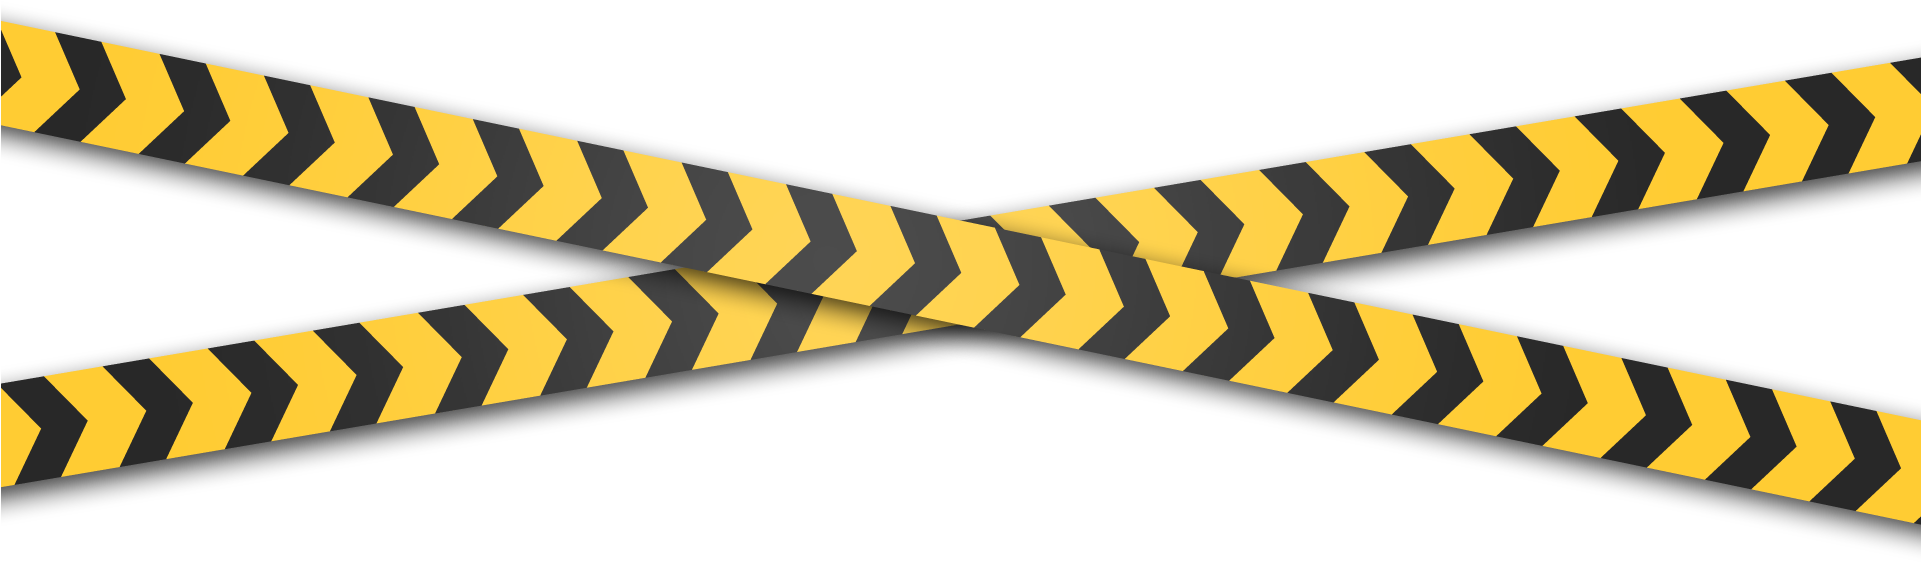 Download hd under x. Construction tape png graphic royalty free stock